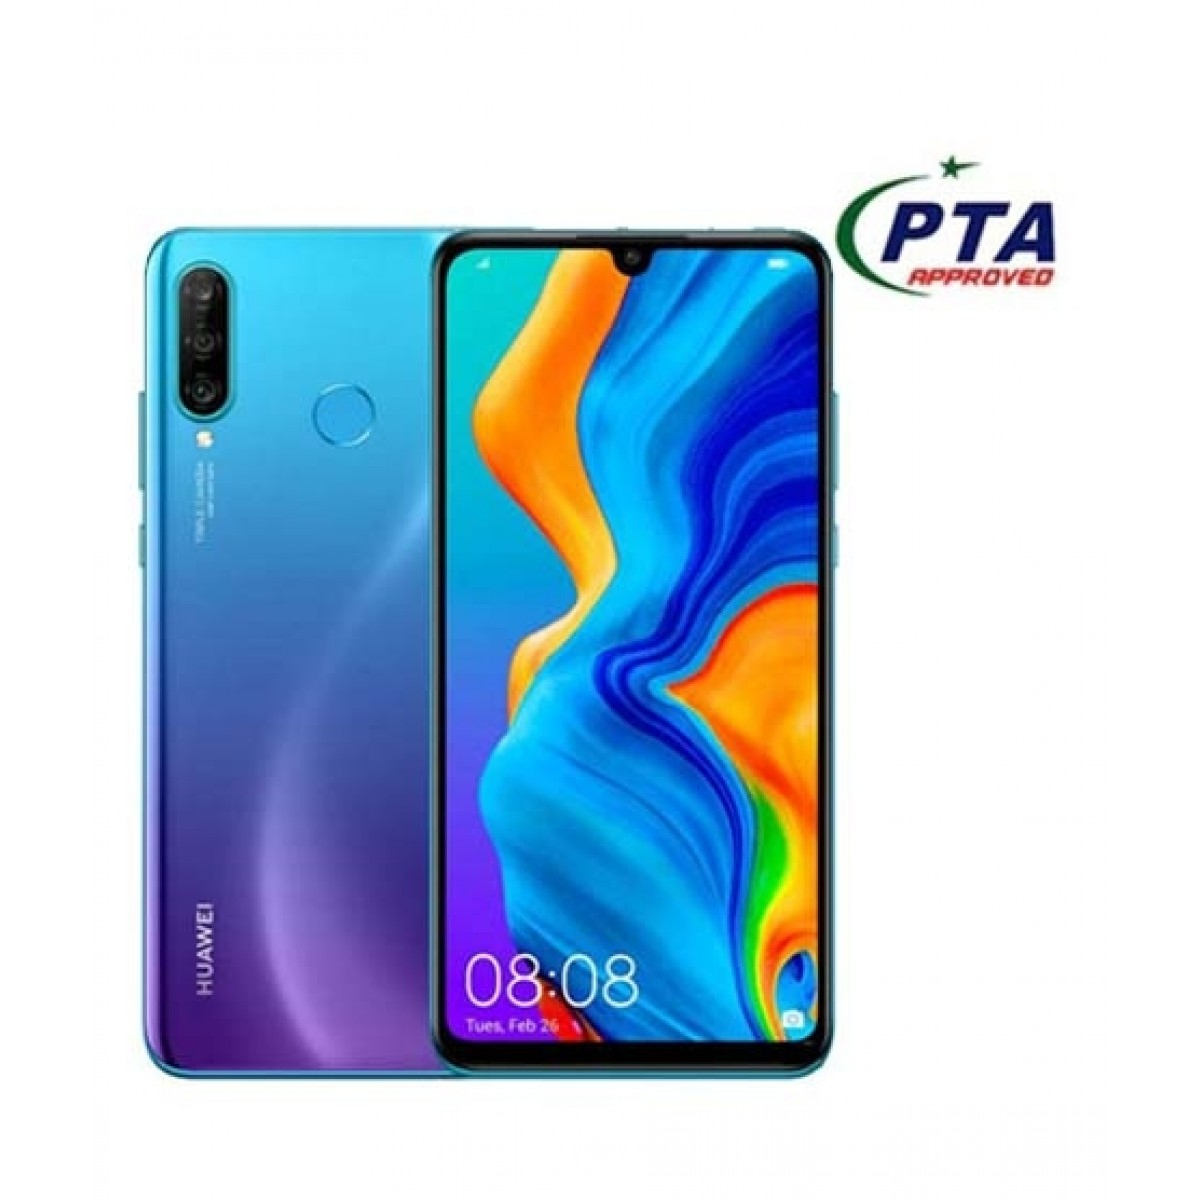 Huawei P30 Lite 128GB 4GB RAM Dual Sim Peacock Blue - Official Warranty